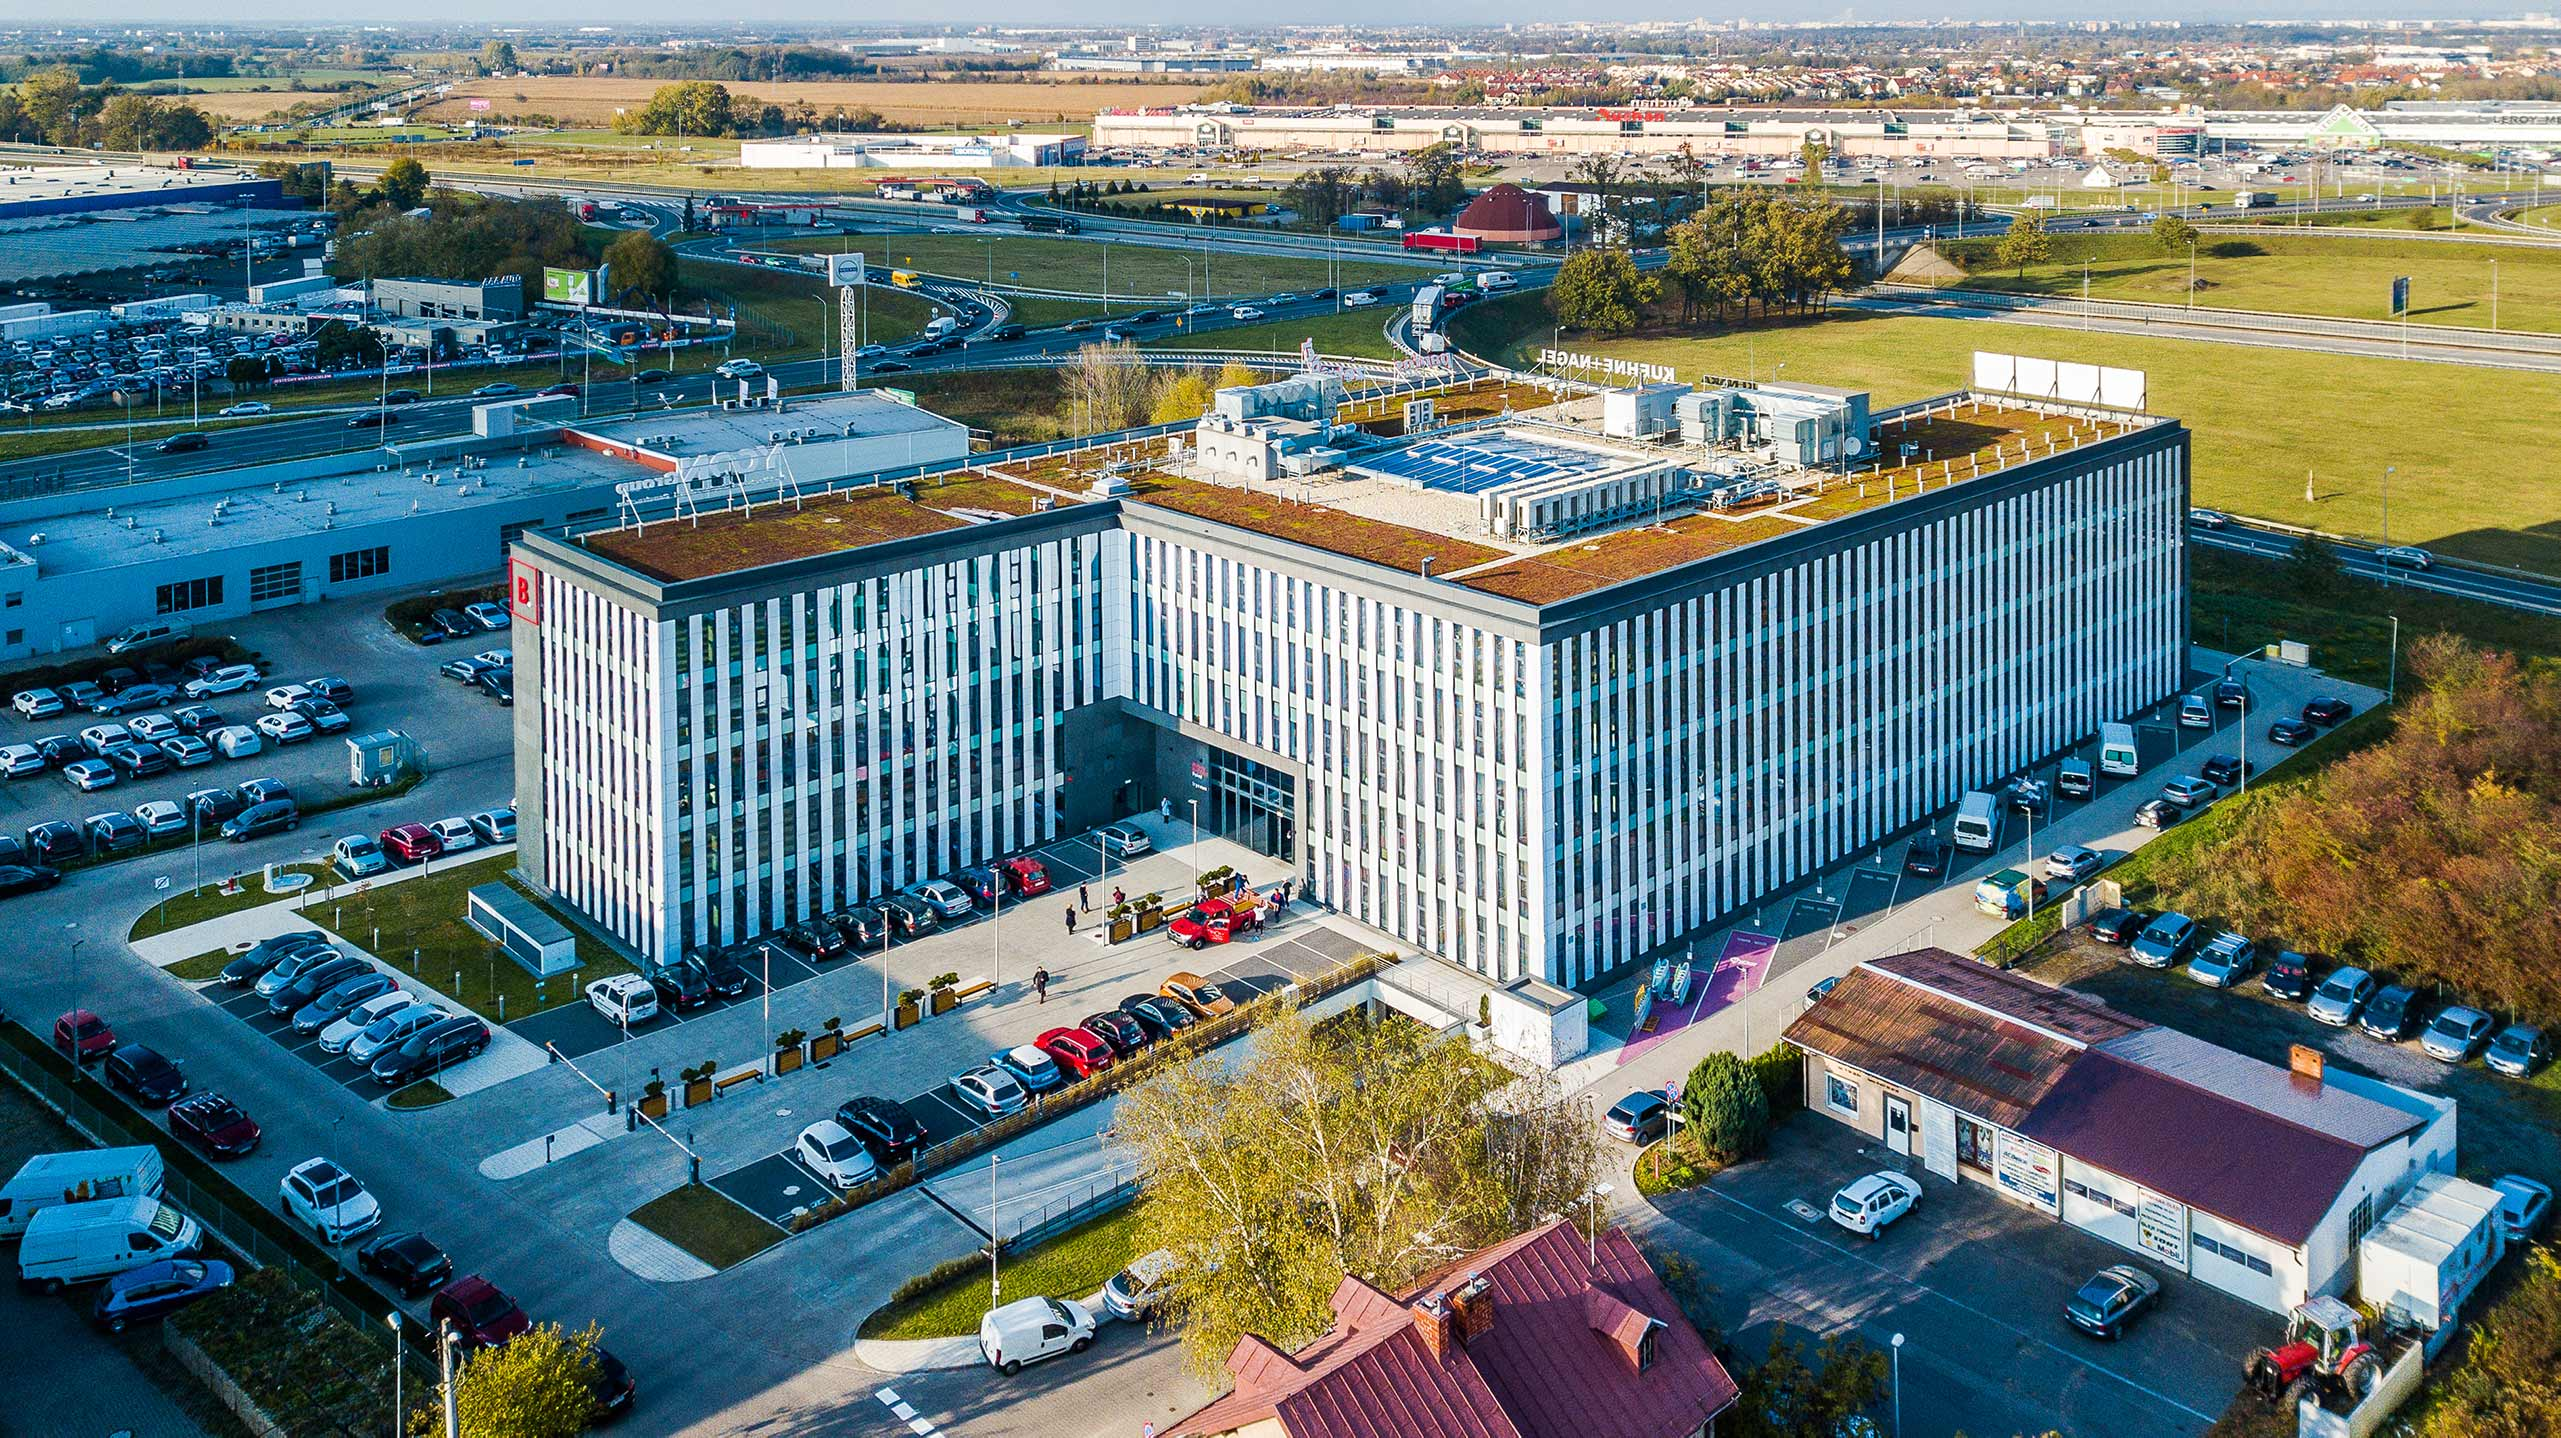 The office building is conveniently located on the outskirts of Wrocław